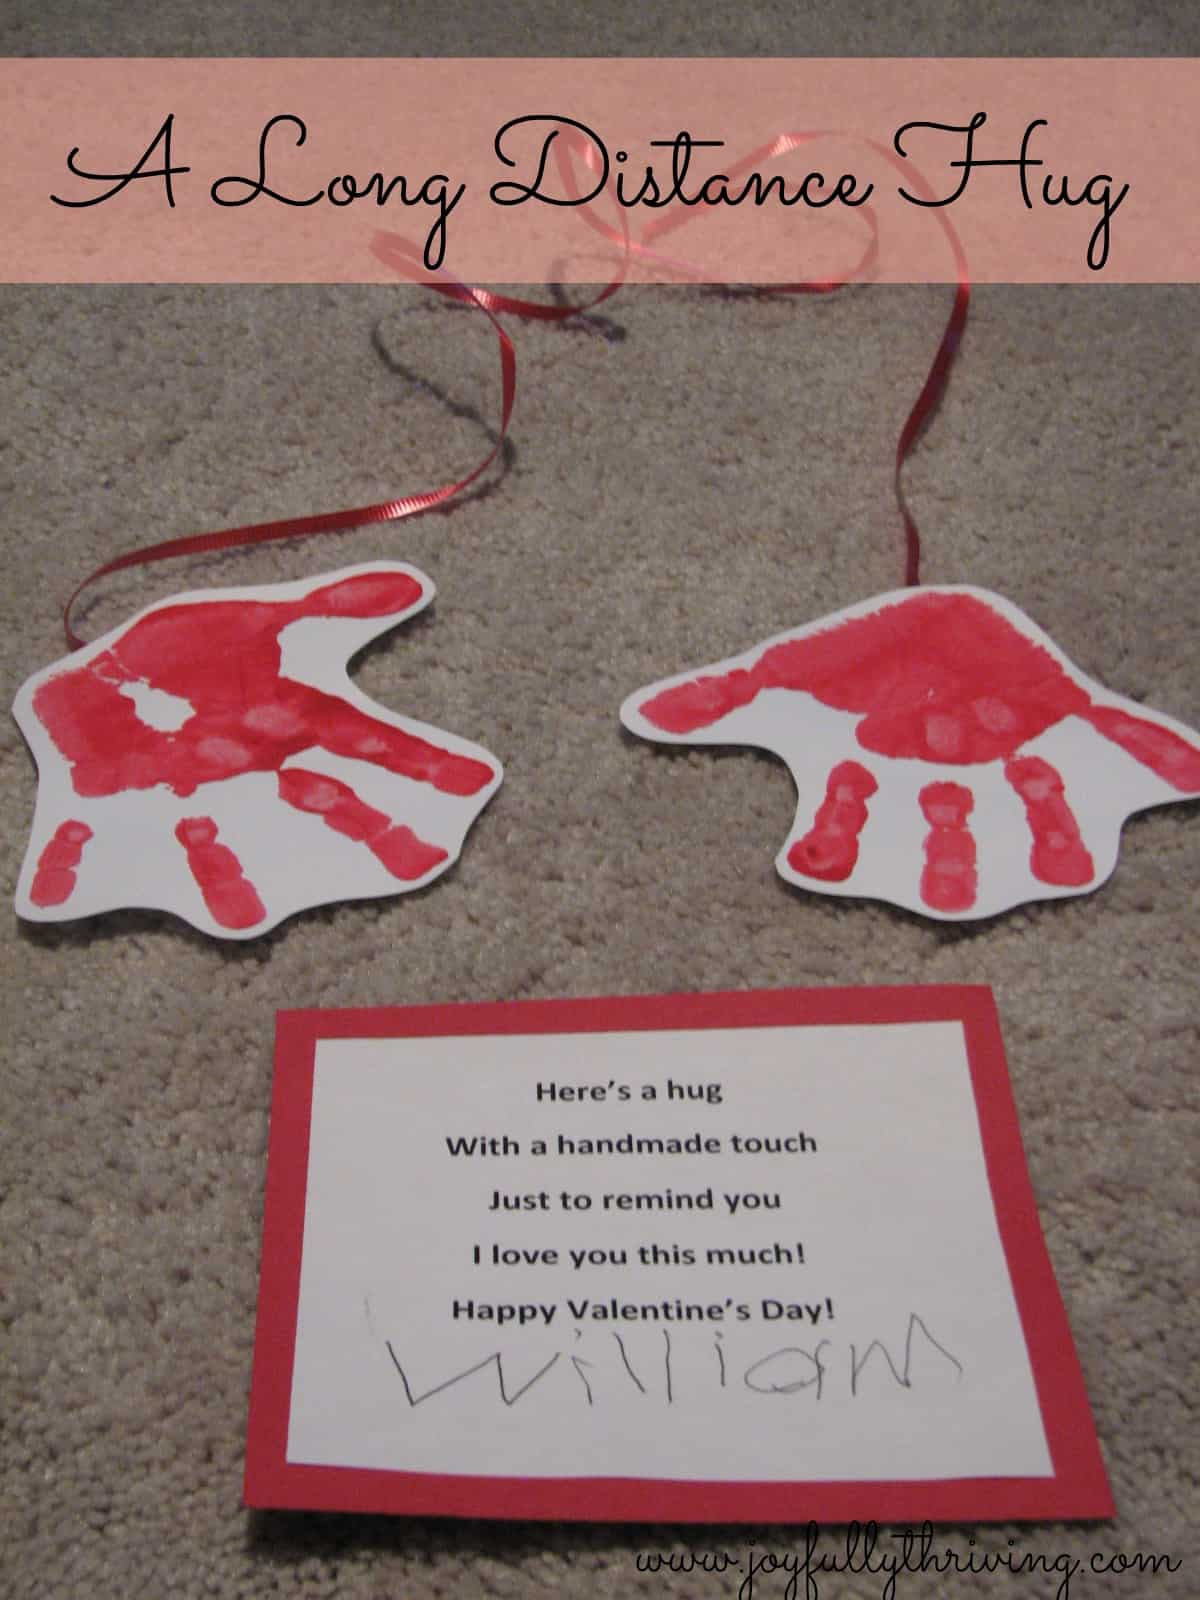 Valentines day crafts for children - This Simple And Adorable Craft Is Perfect For Valentine S Day Stamp Your Child S Hands To